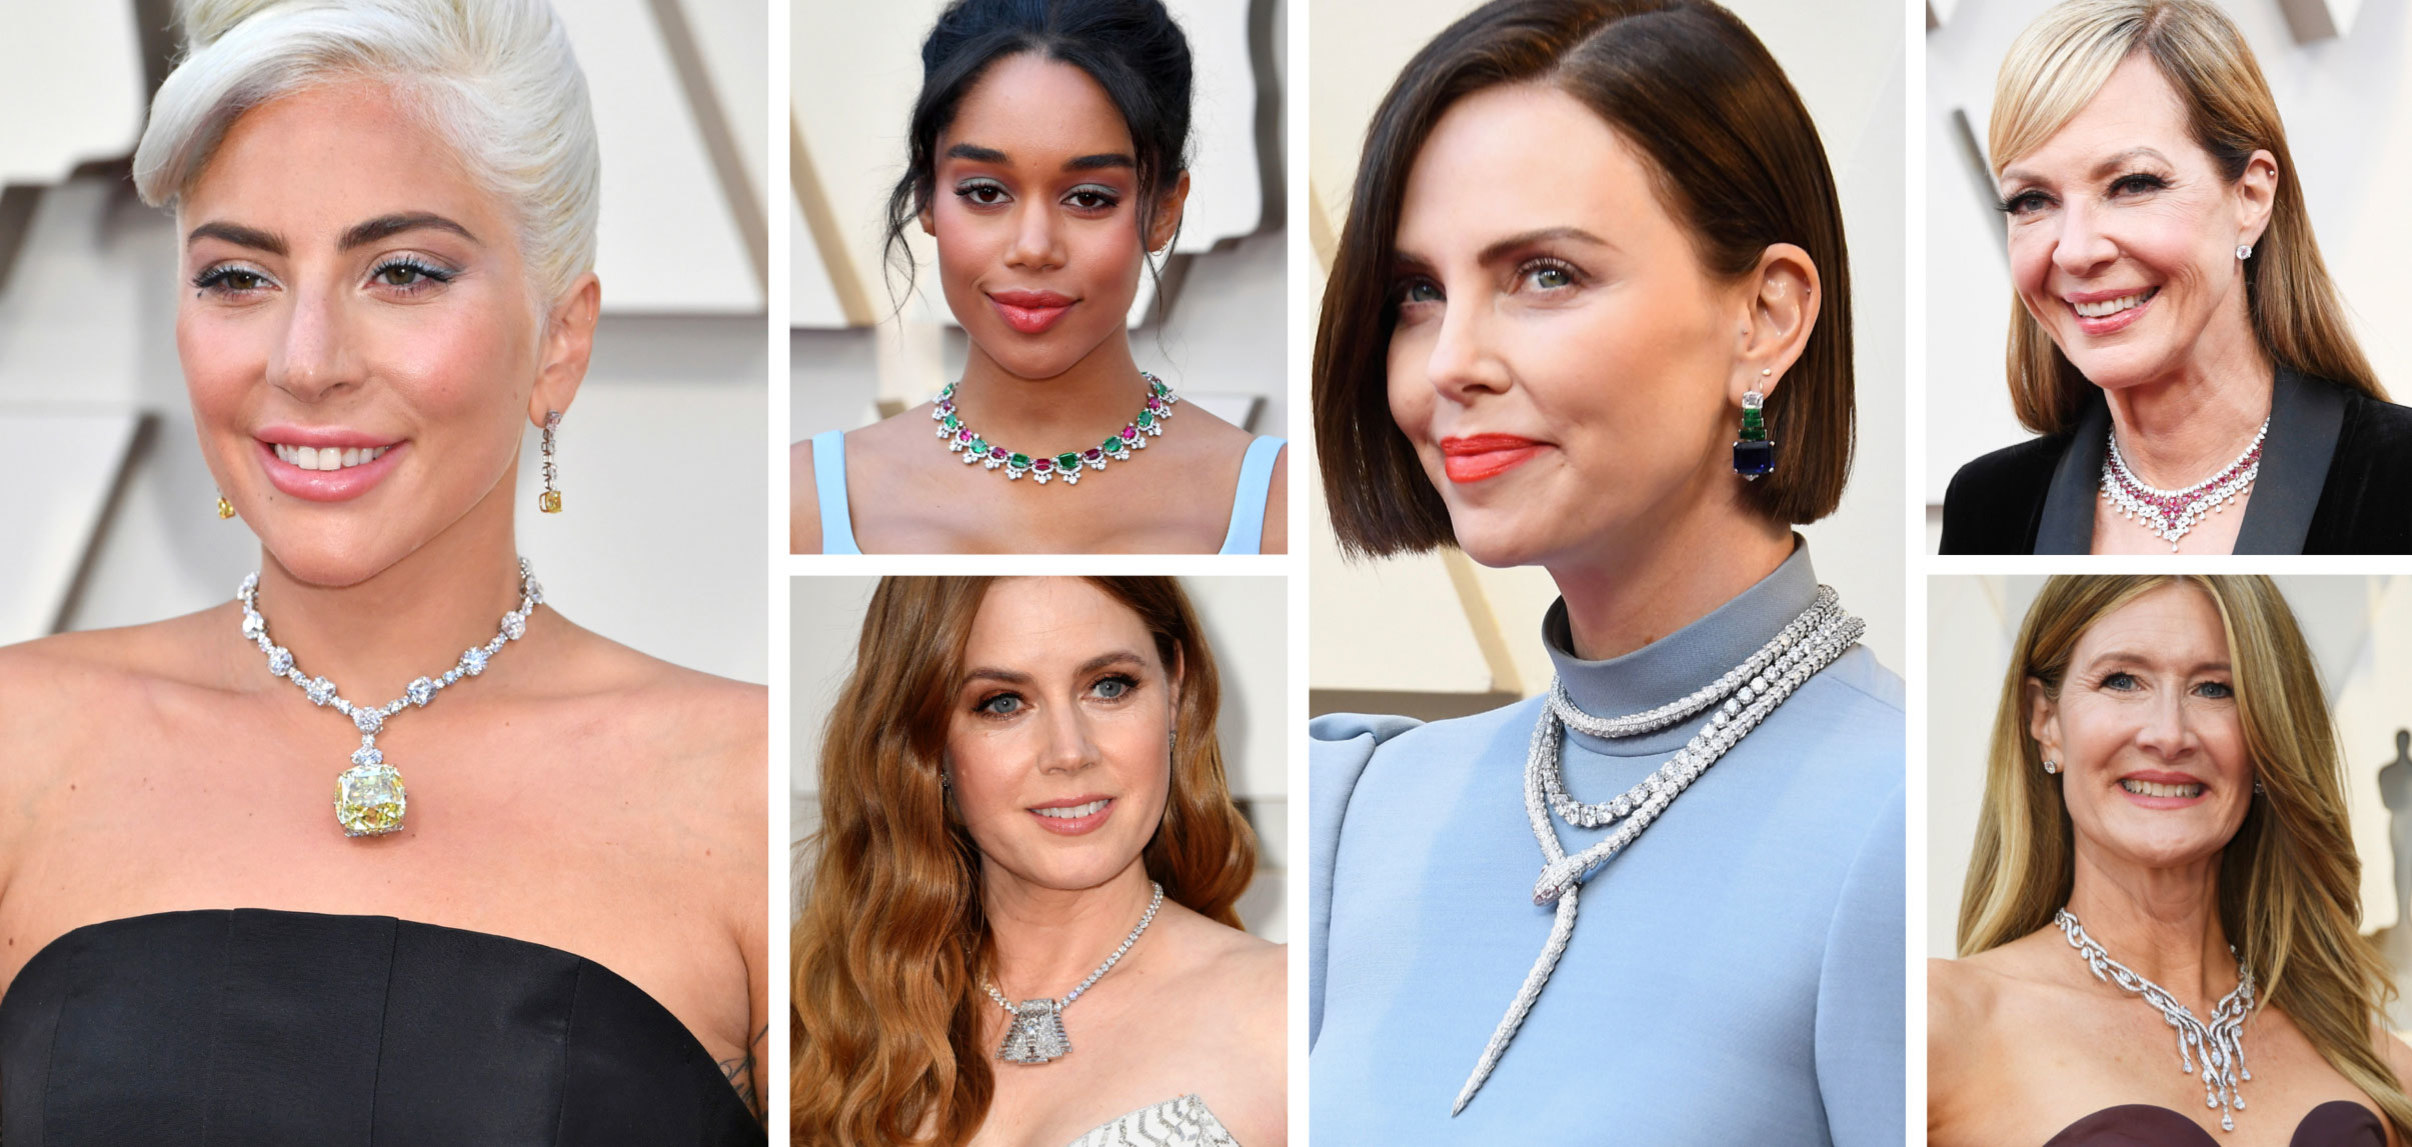 The Oscars 2019 Statement Necklace Trend